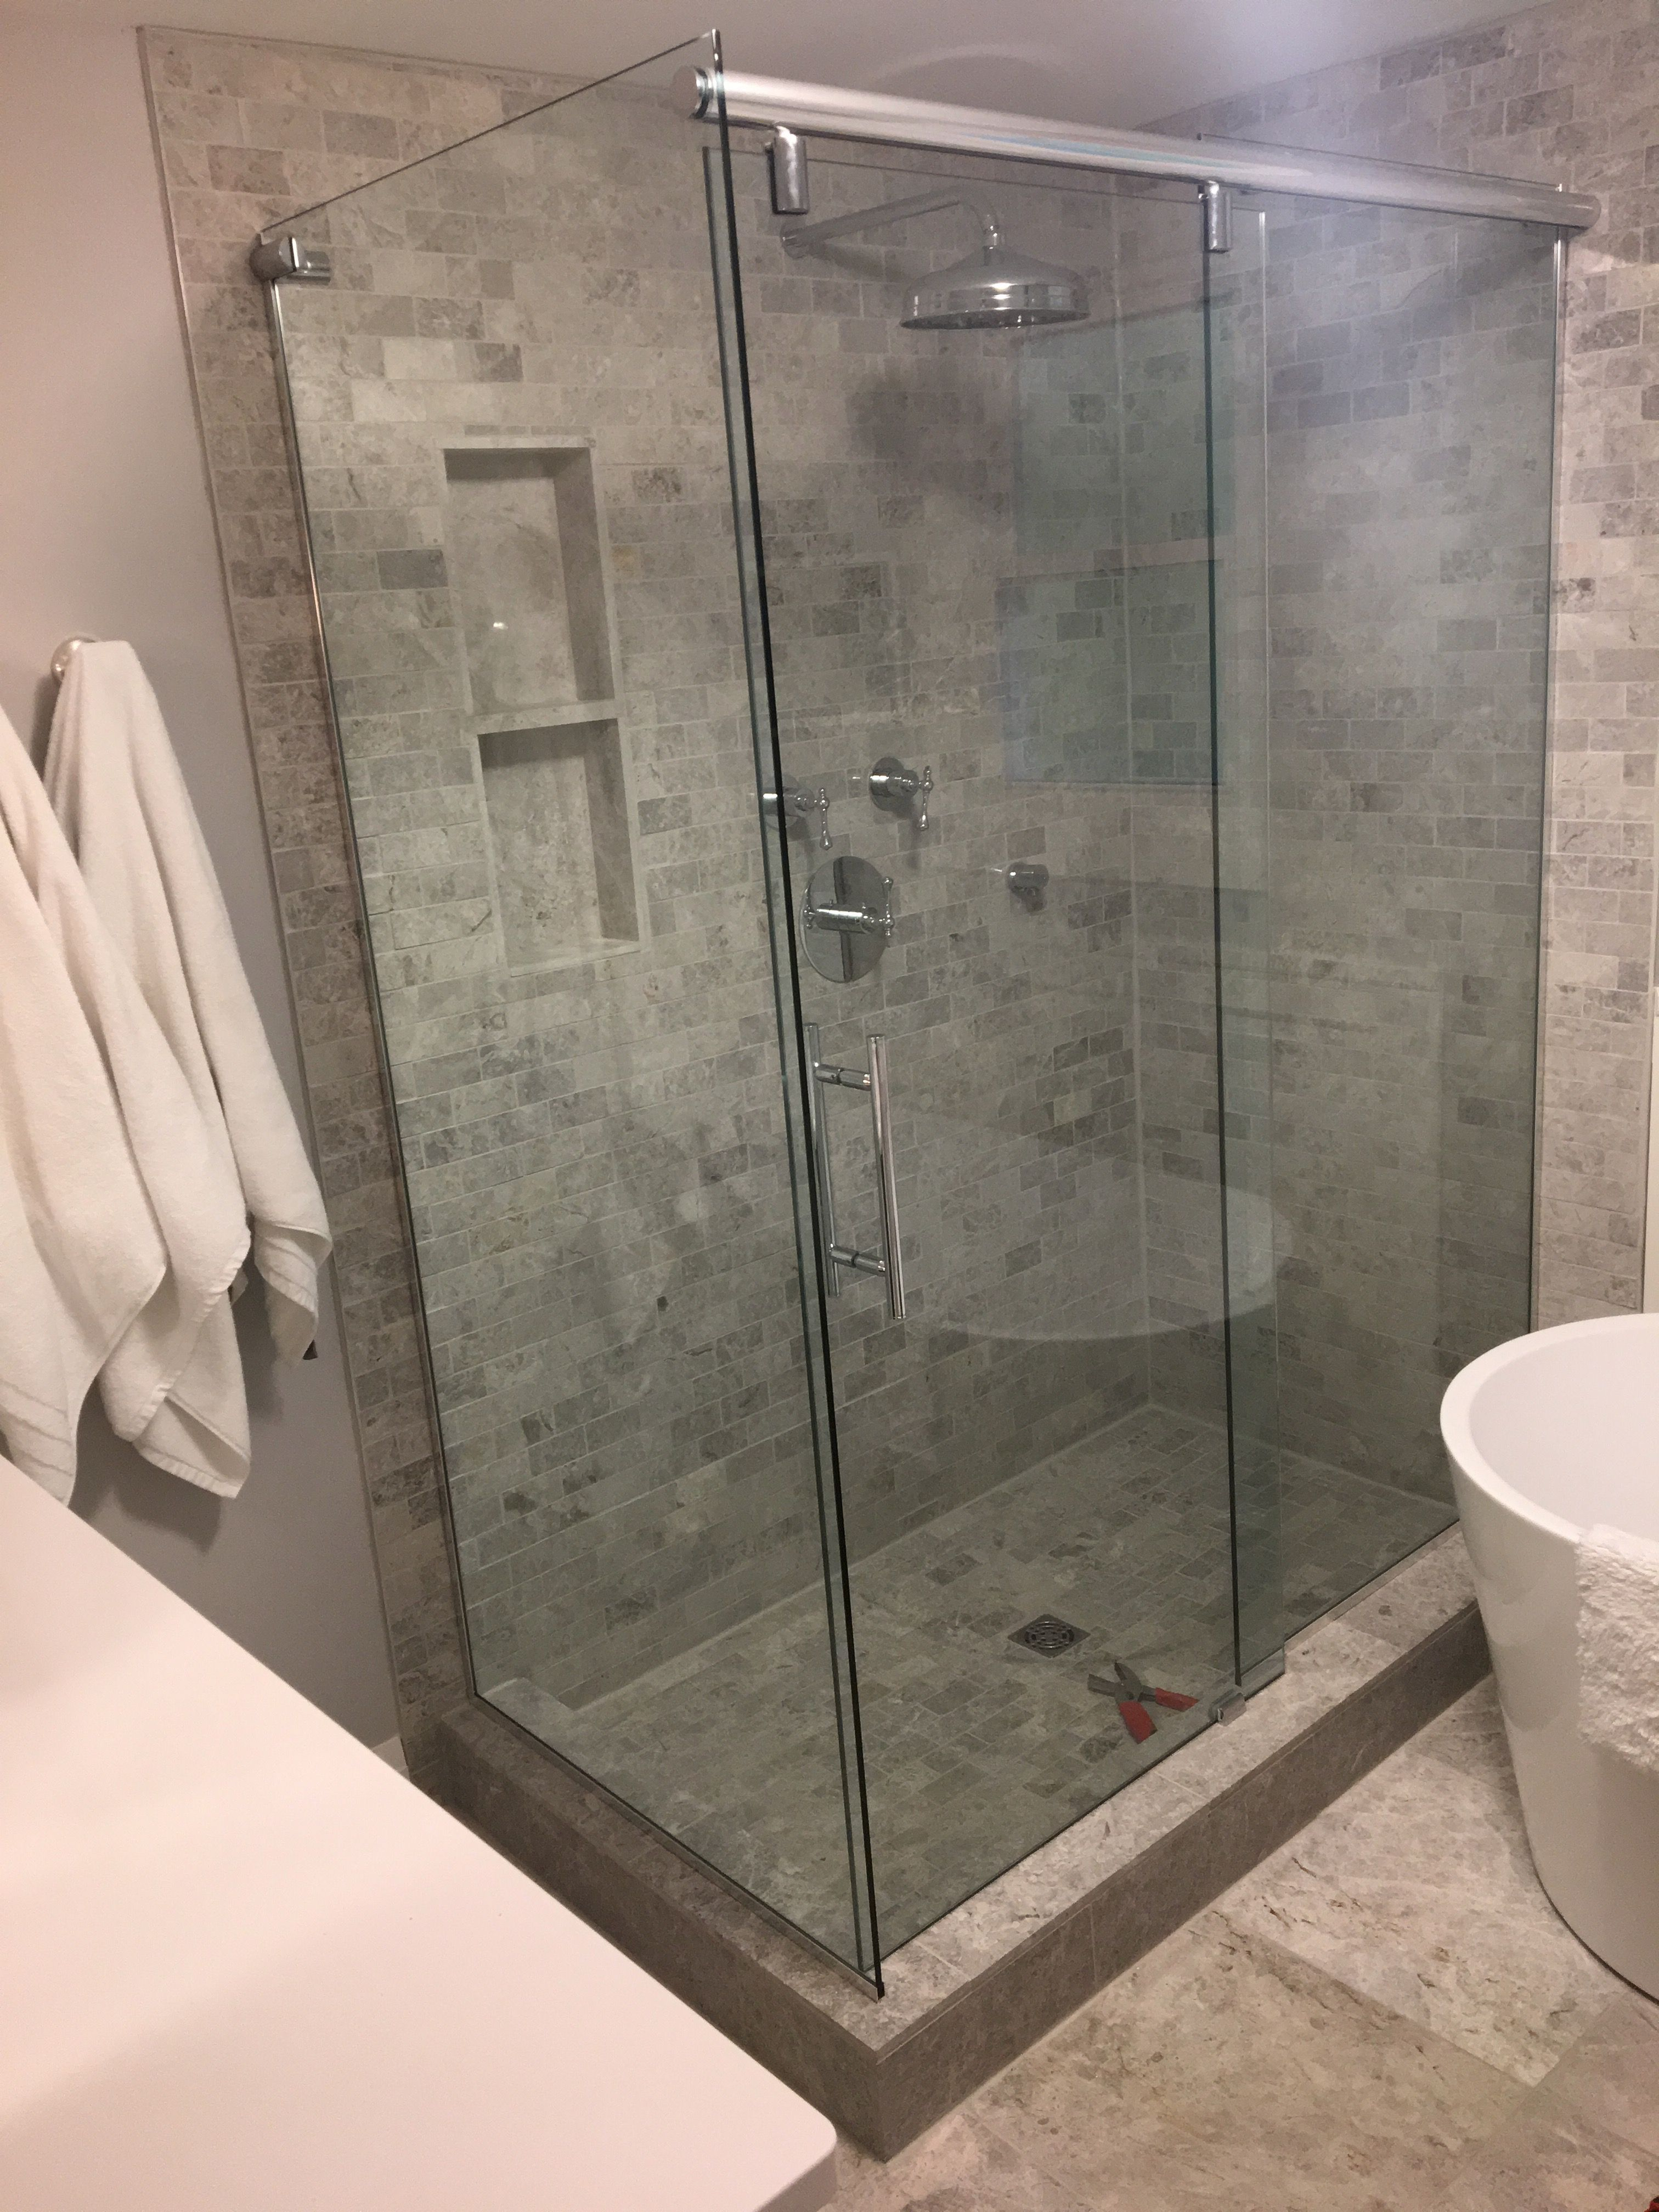 10mm clear tempered glass shower enclosure sliding door system 10mm clear tempered glass shower enclosure sliding door system instead of a swing door eventelaan Image collections